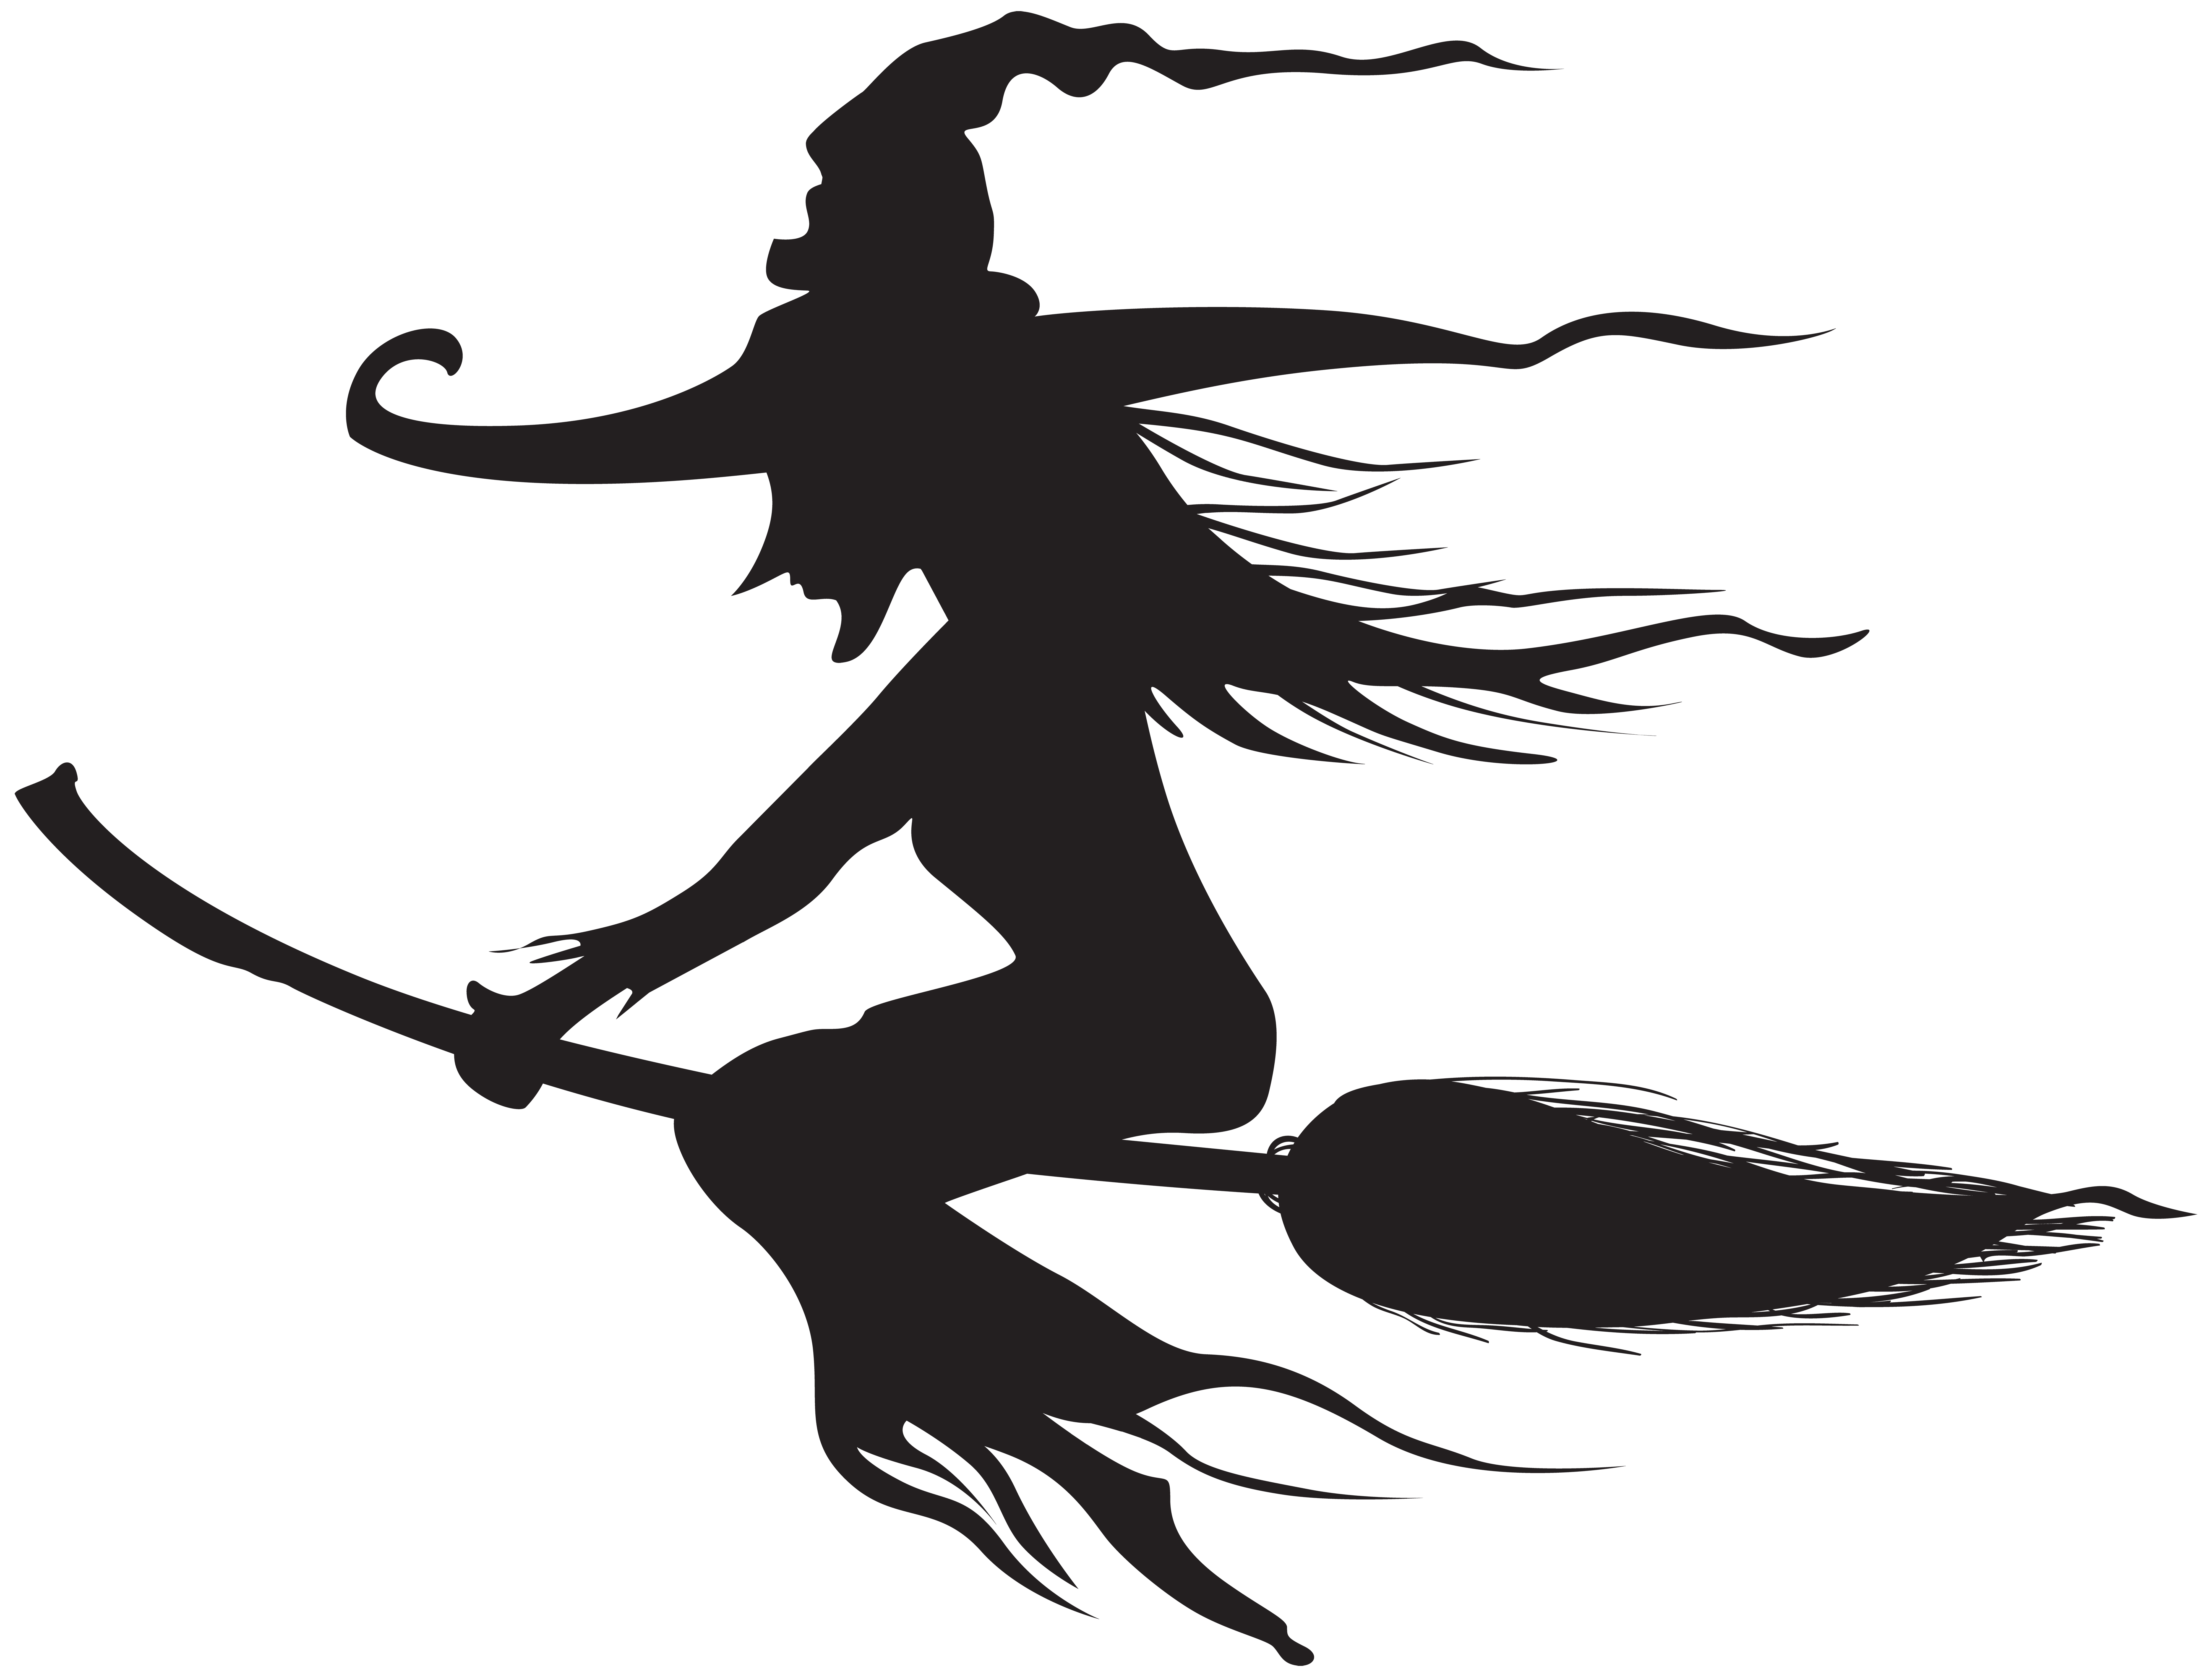 Witch silhouette images clipart picture black and white library Halloween Witch Silhouette PNG Clip Art   Gallery ... picture black and white library